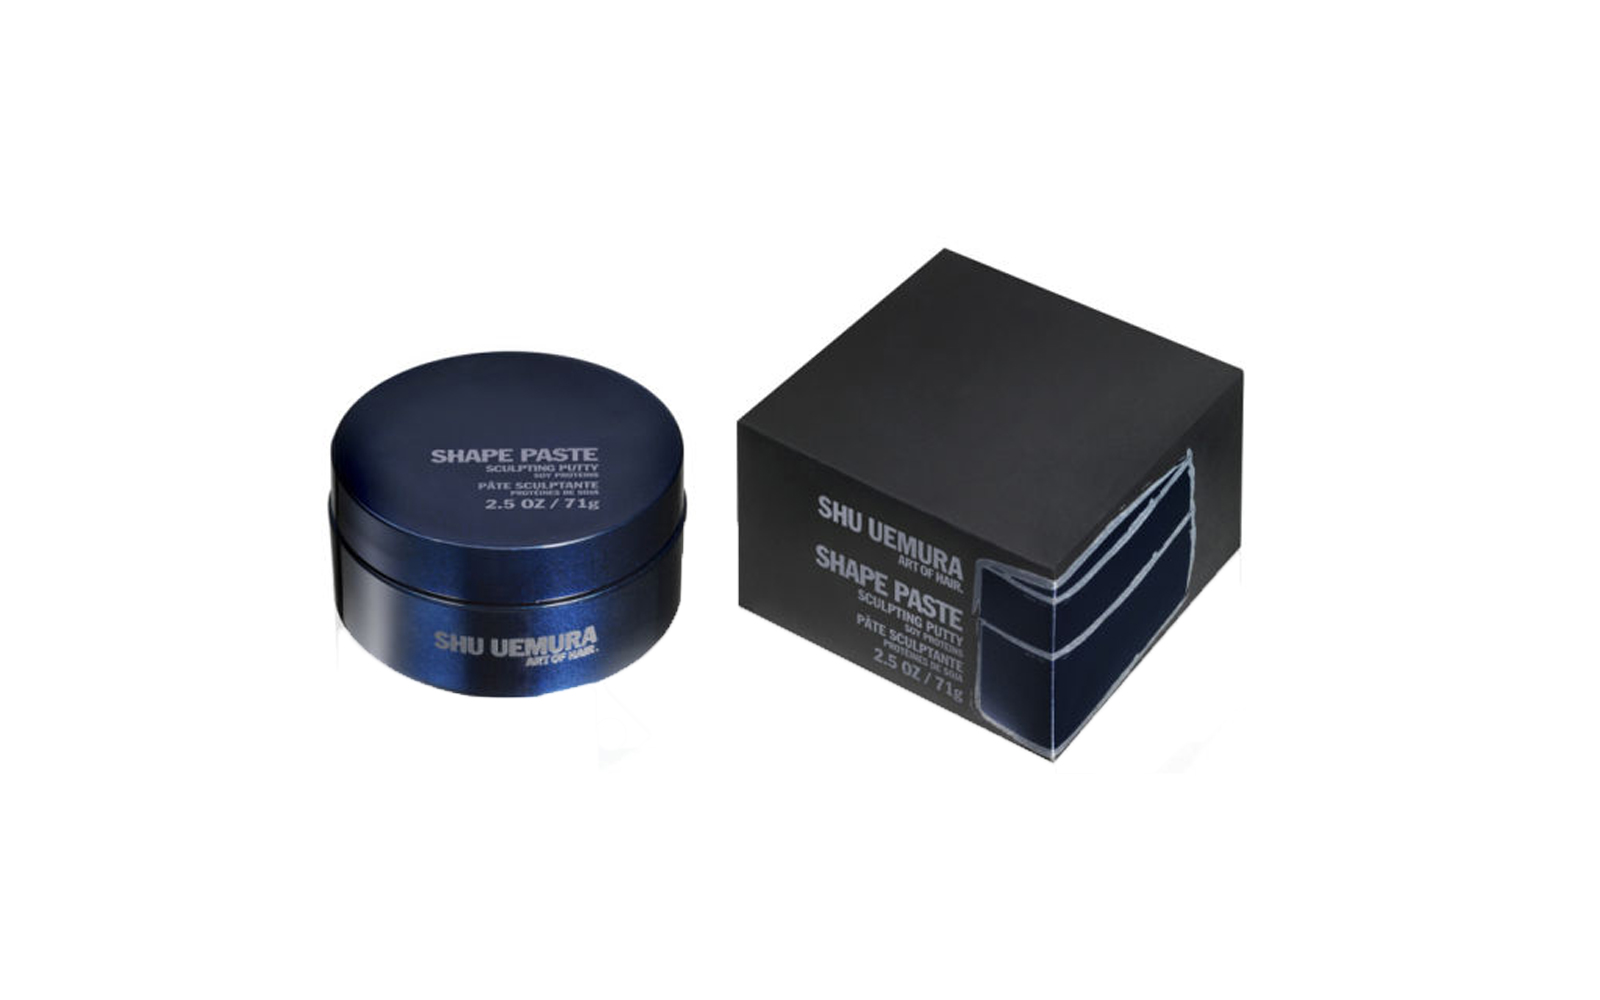 Best travel-friendly grooming products for men